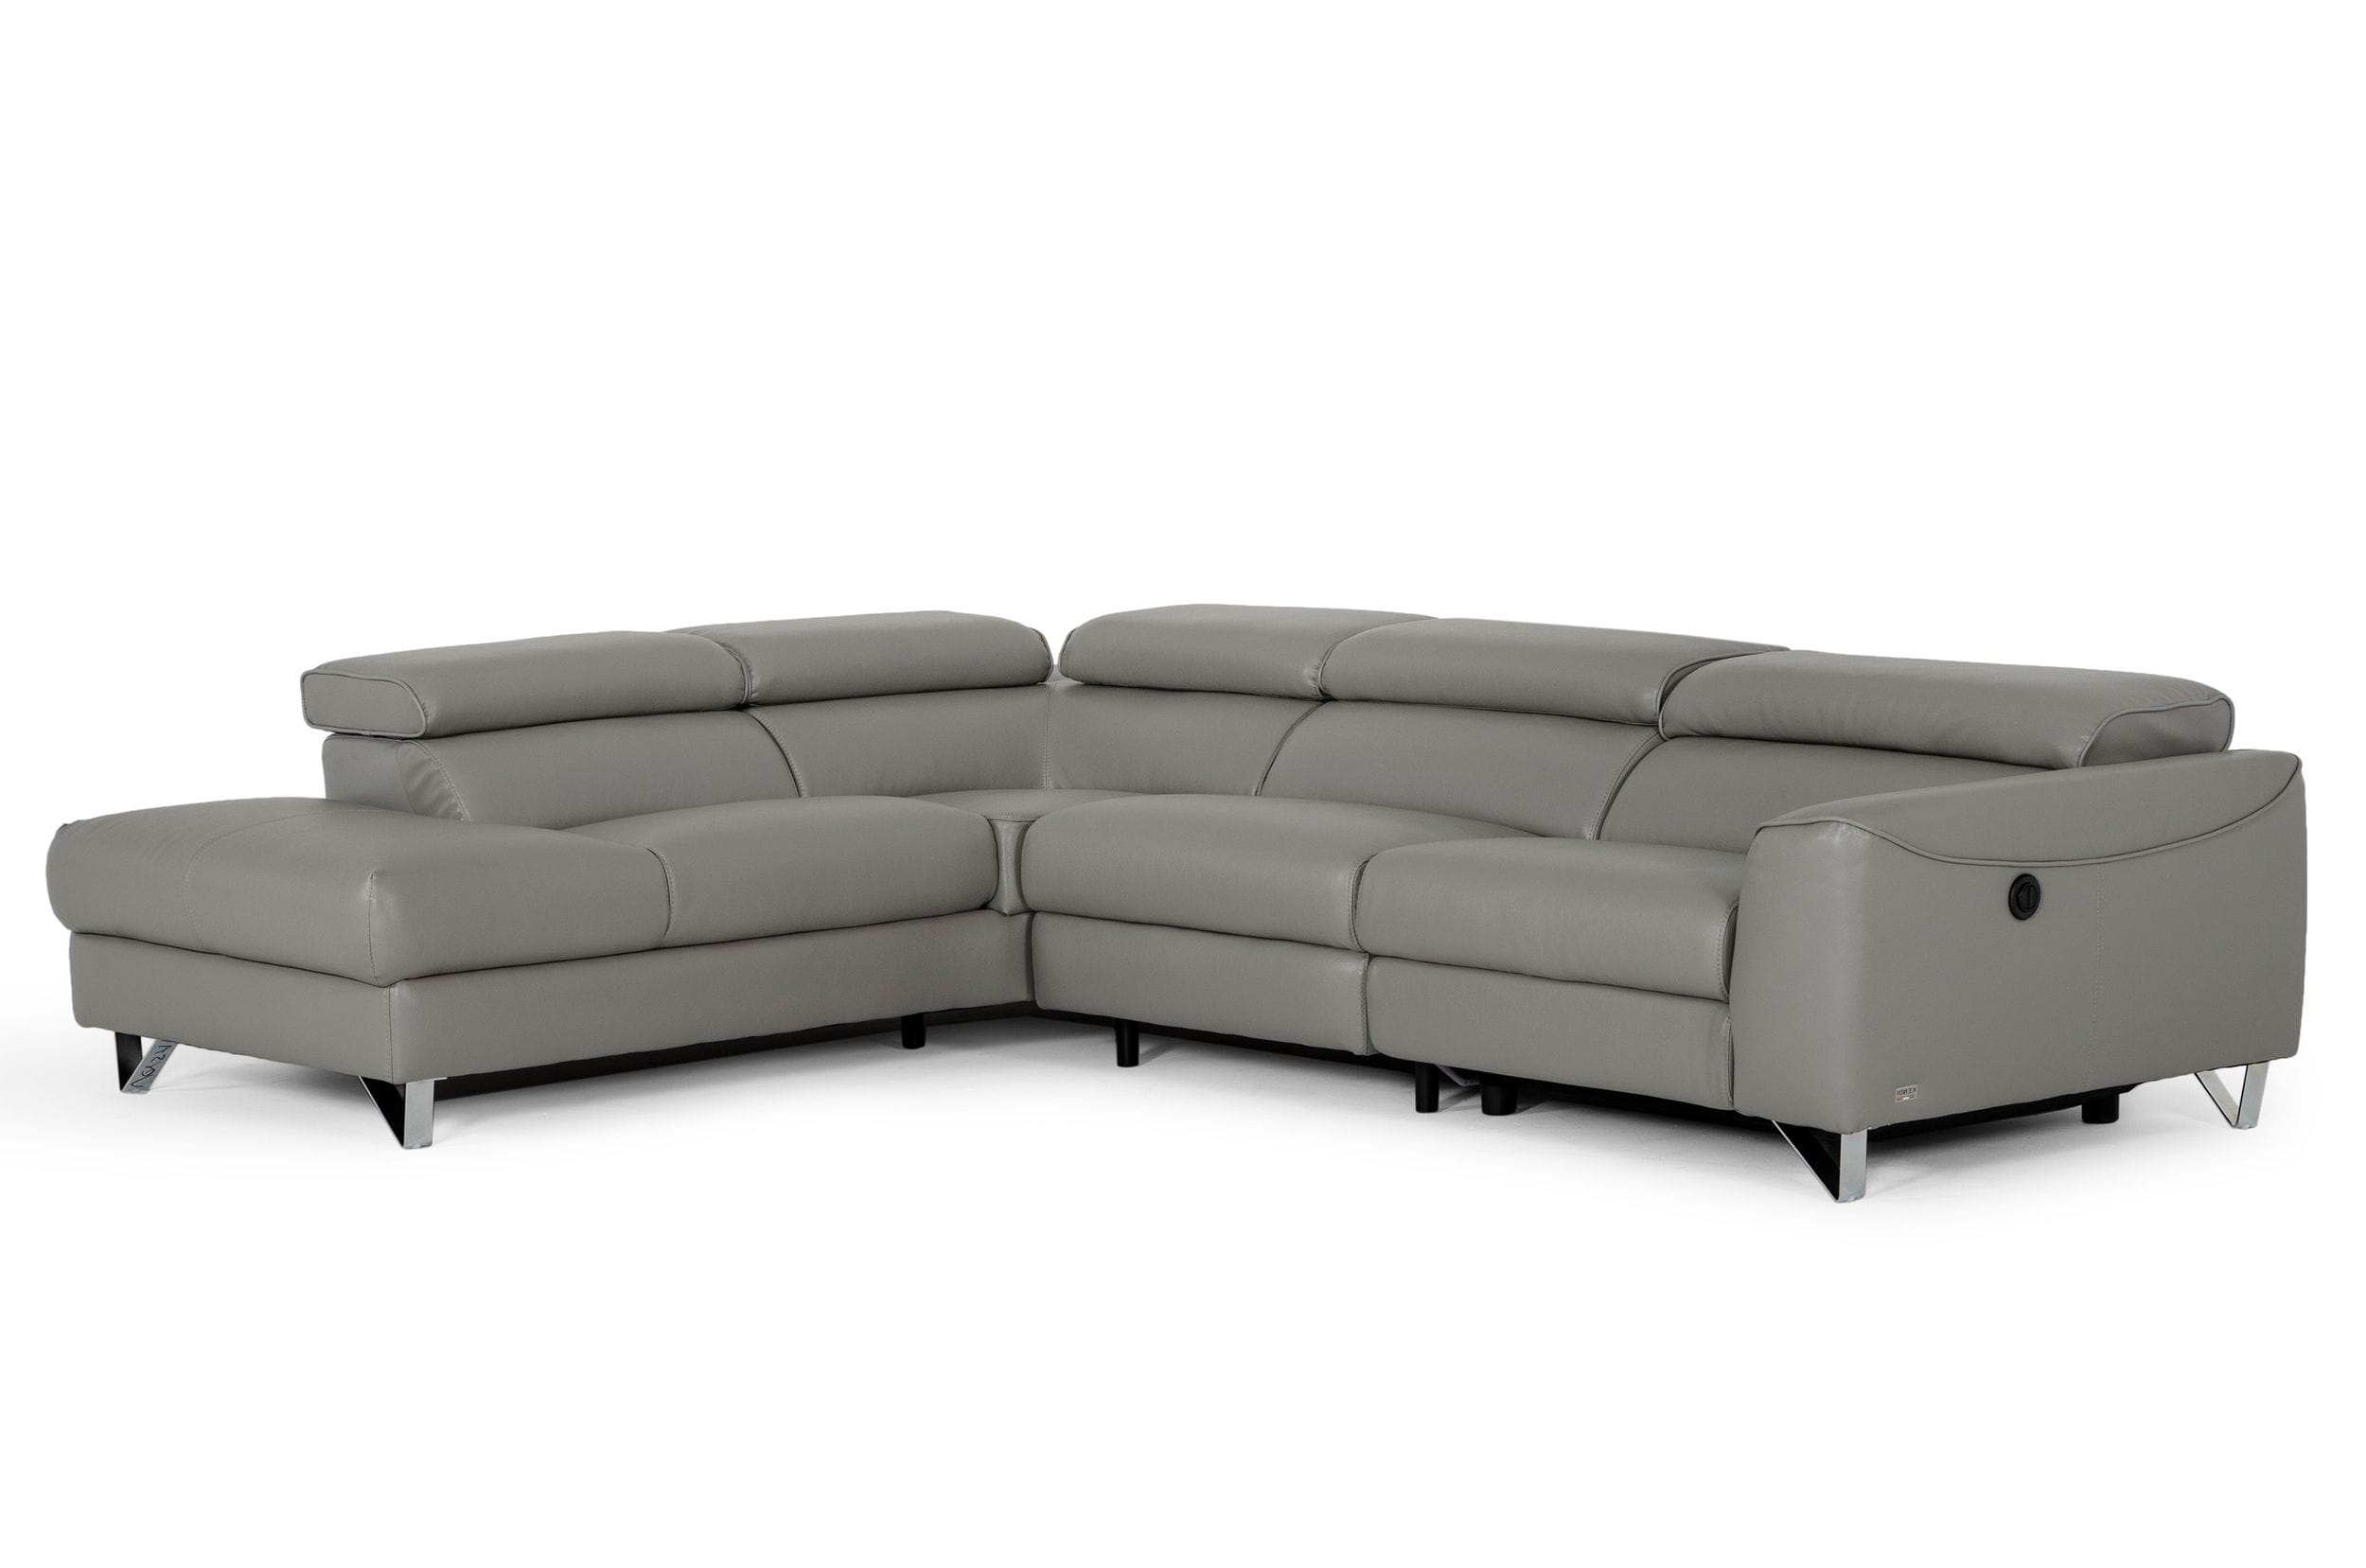 VIG Furniture Divani Casa Versa Modern Grey Teco Leather LAF Chaise Sectional with Recliner